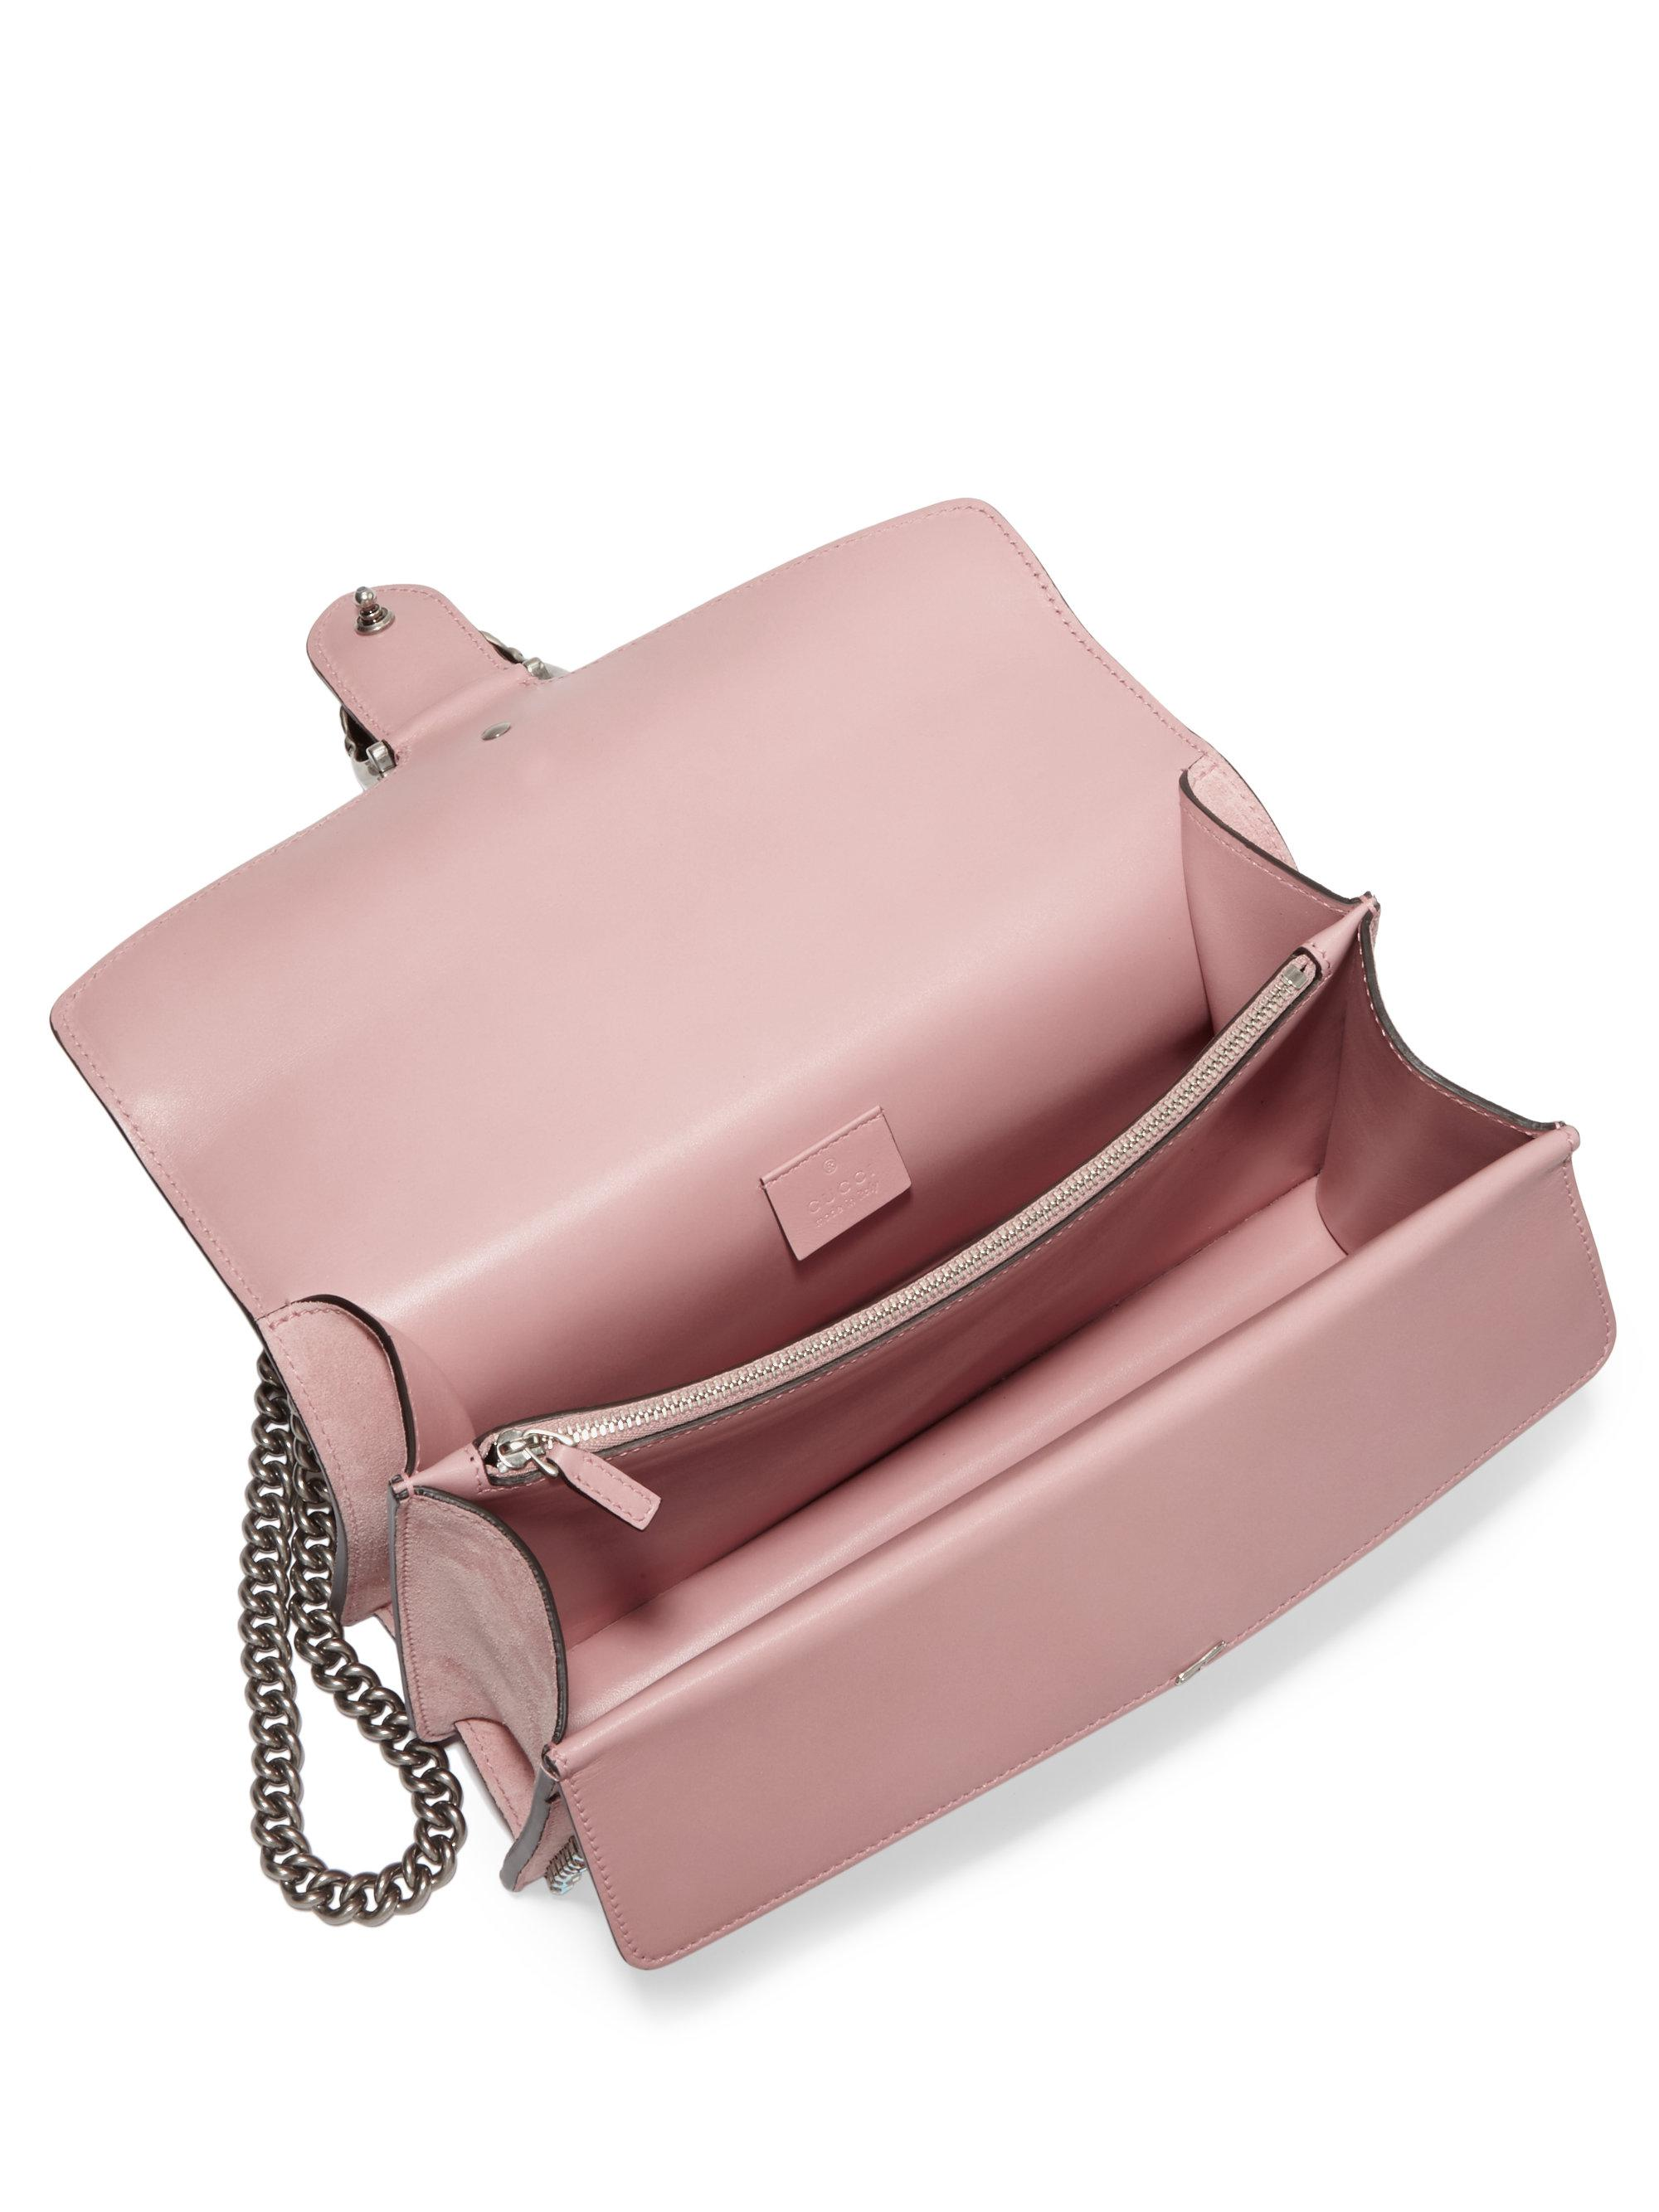 53b838c63d60 Lyst - Gucci Small Crystal-embellished Suede Chain Shoulder Bag in Pink